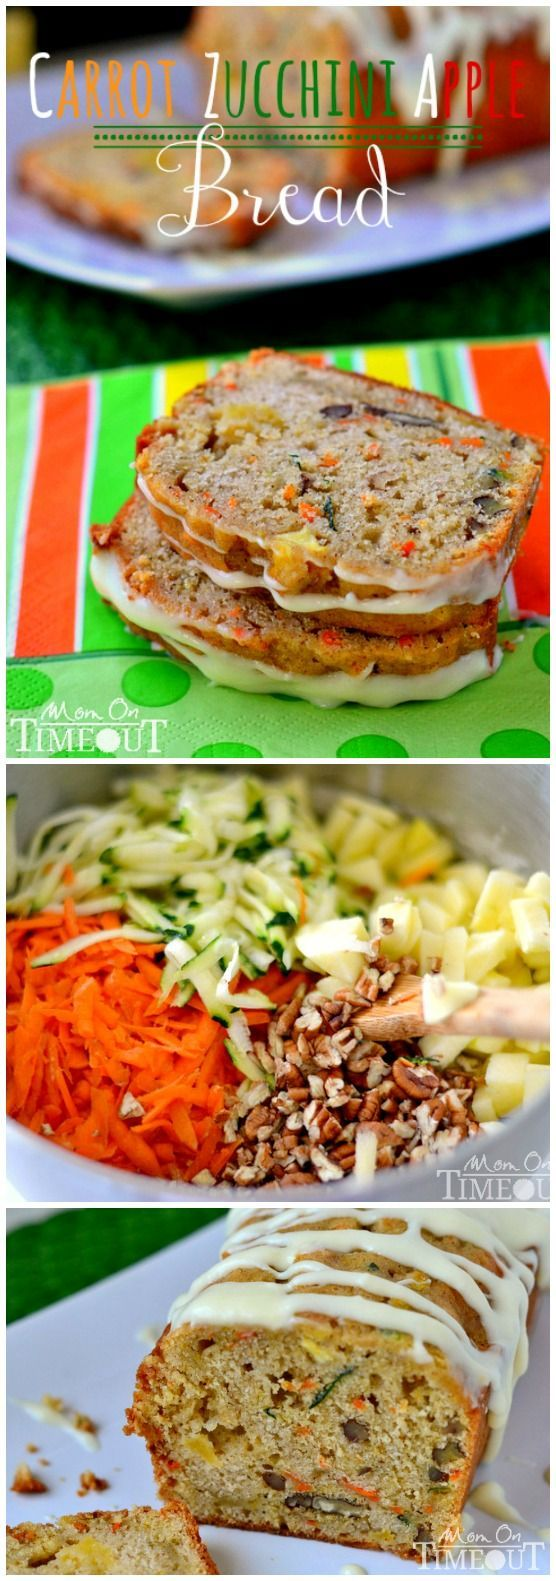 """This easy recipe for Carrot Zucchini Apple Bread is both delicious and healthy! Kind of a """"kitchen sink"""" of ingredients that combine for the most amazing flavor. A great way to use up extras. 